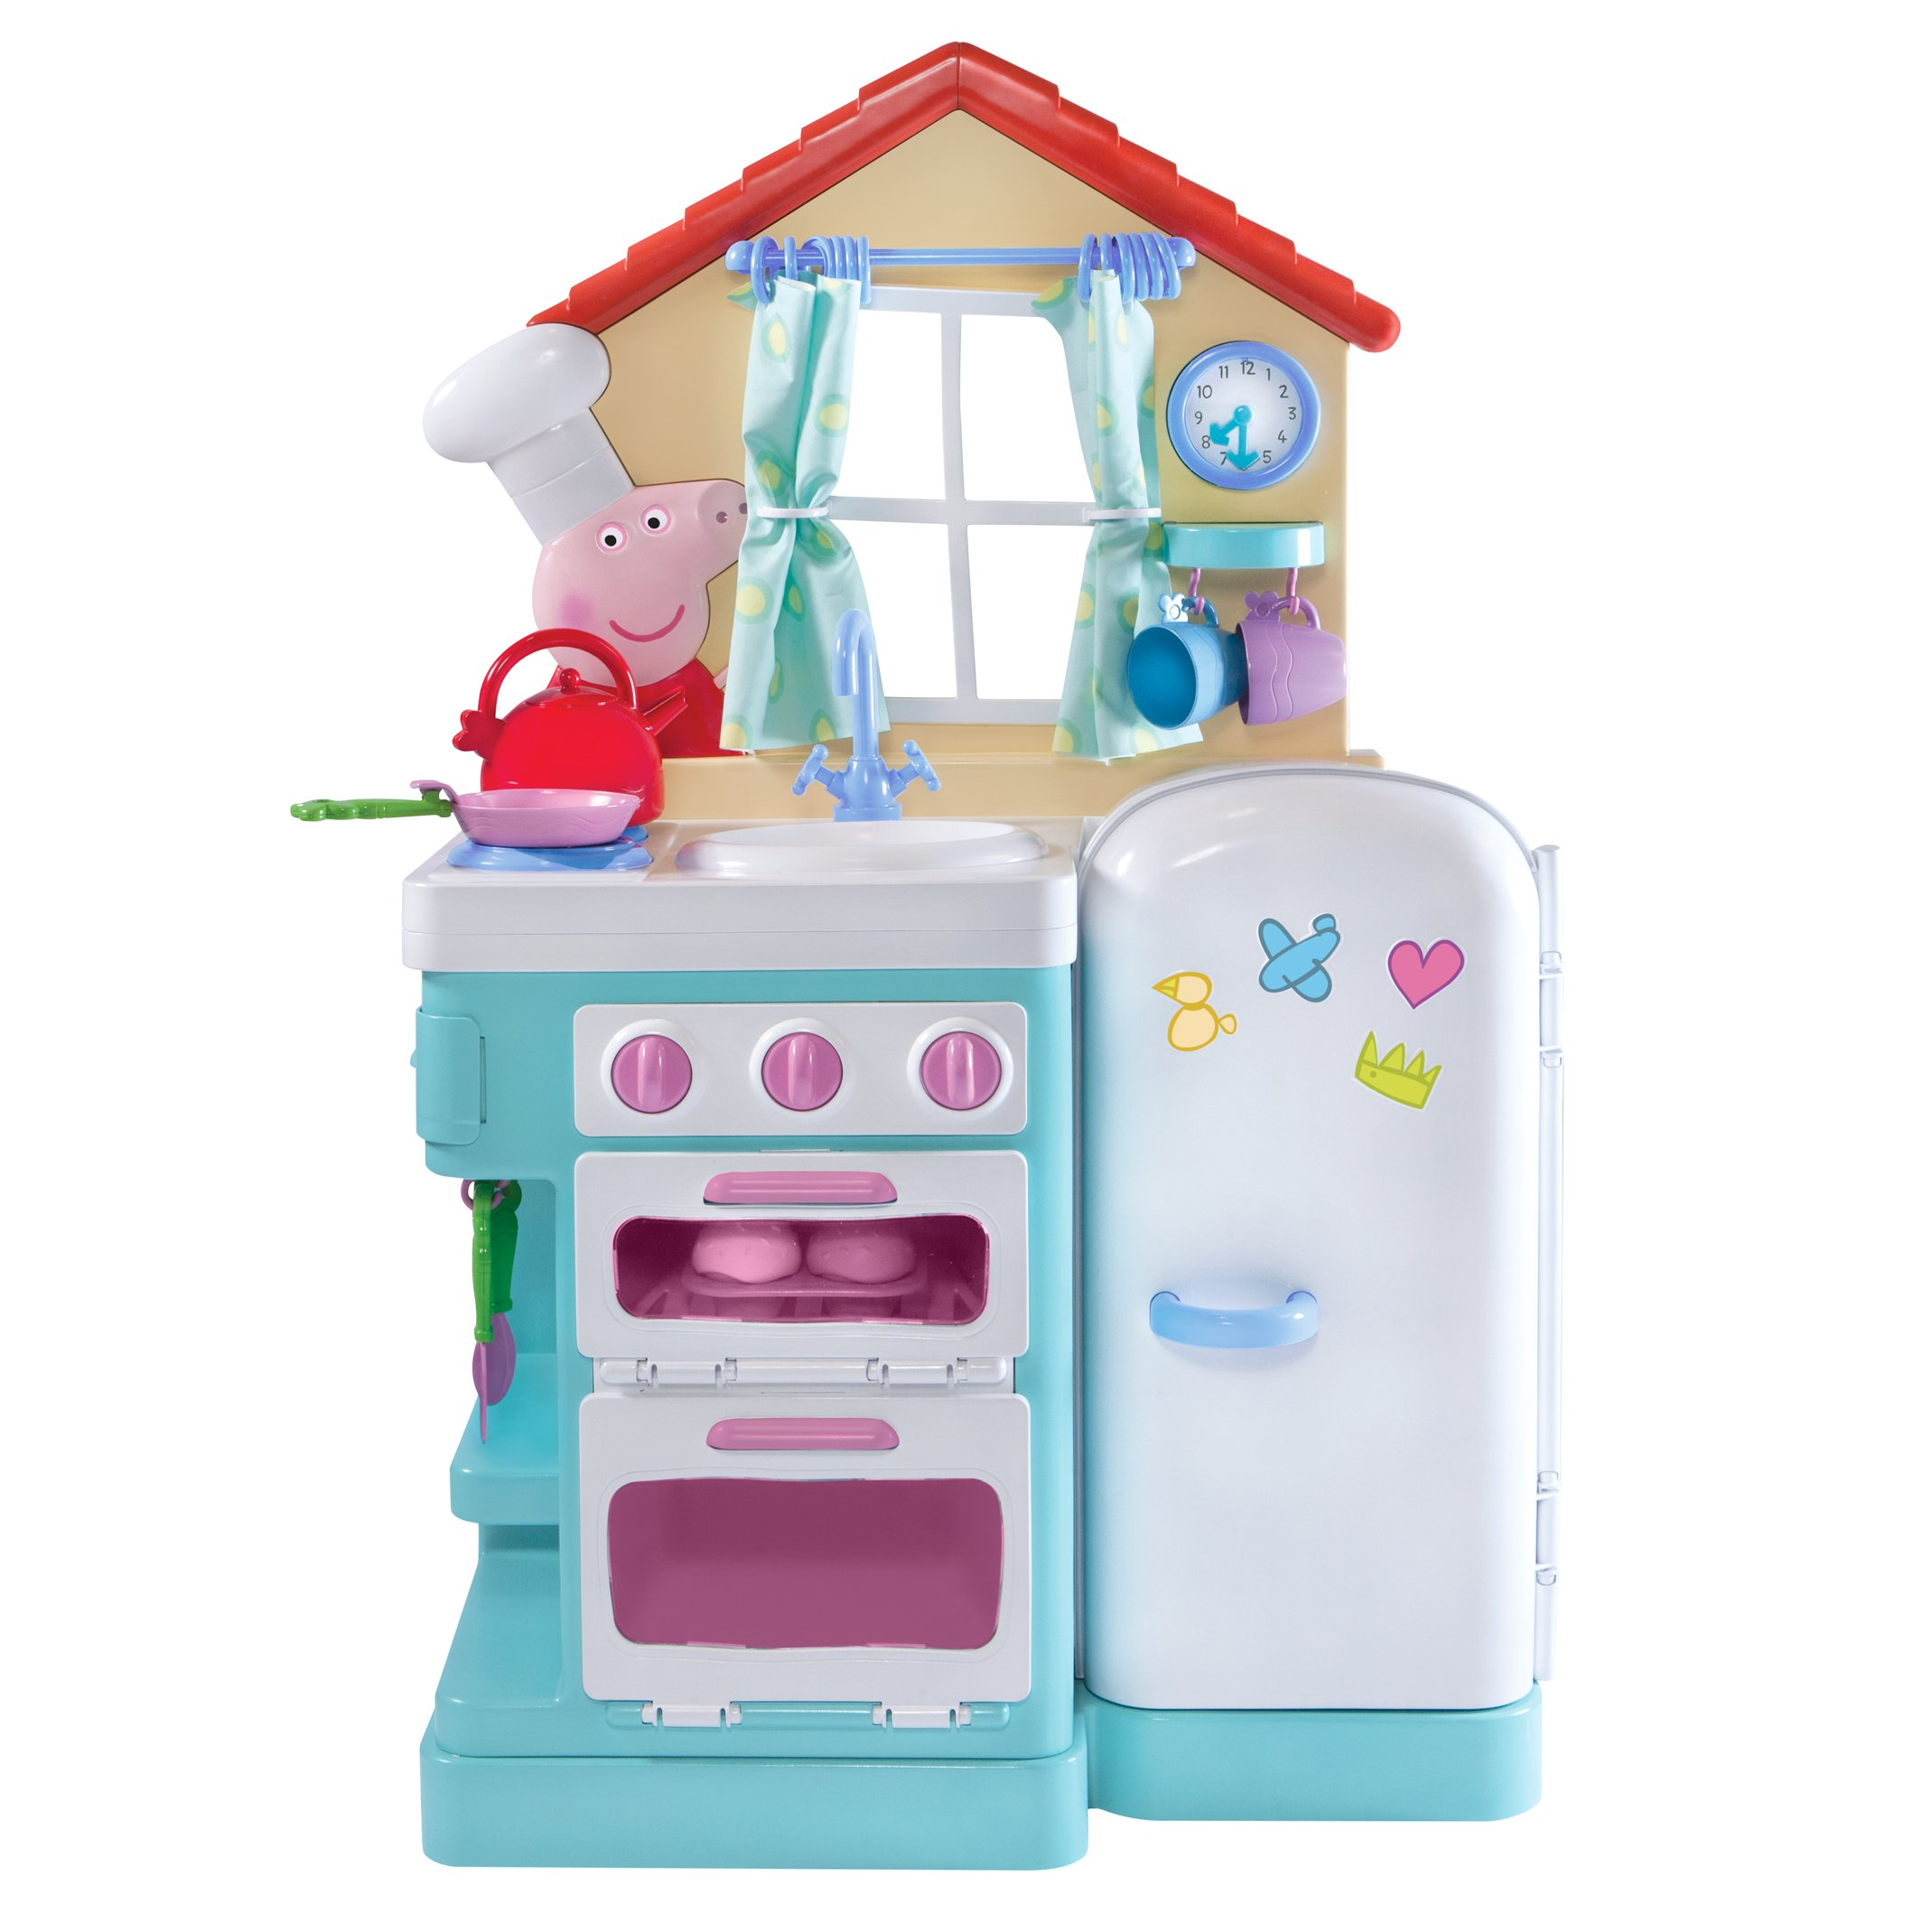 Peppa's Little Kitchen Deluxe Feature Role-Play by Peppa Pig